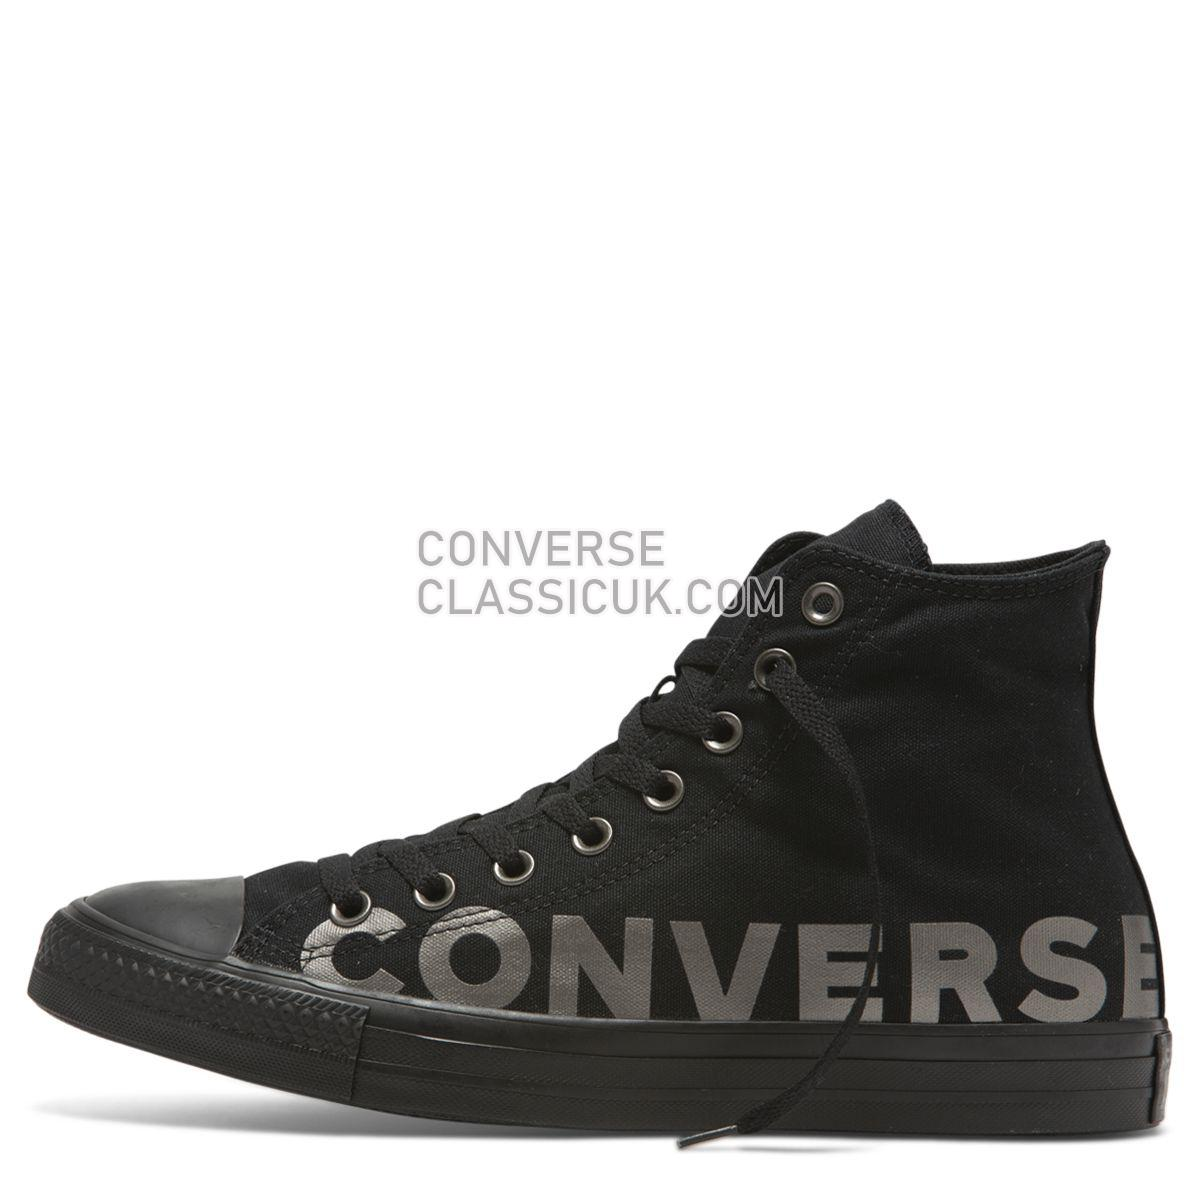 Converse Chuck Taylor All Star Wordmark High Top Black Mens Womens Unisex 165429 Black/Gunmetal/Black Shoes